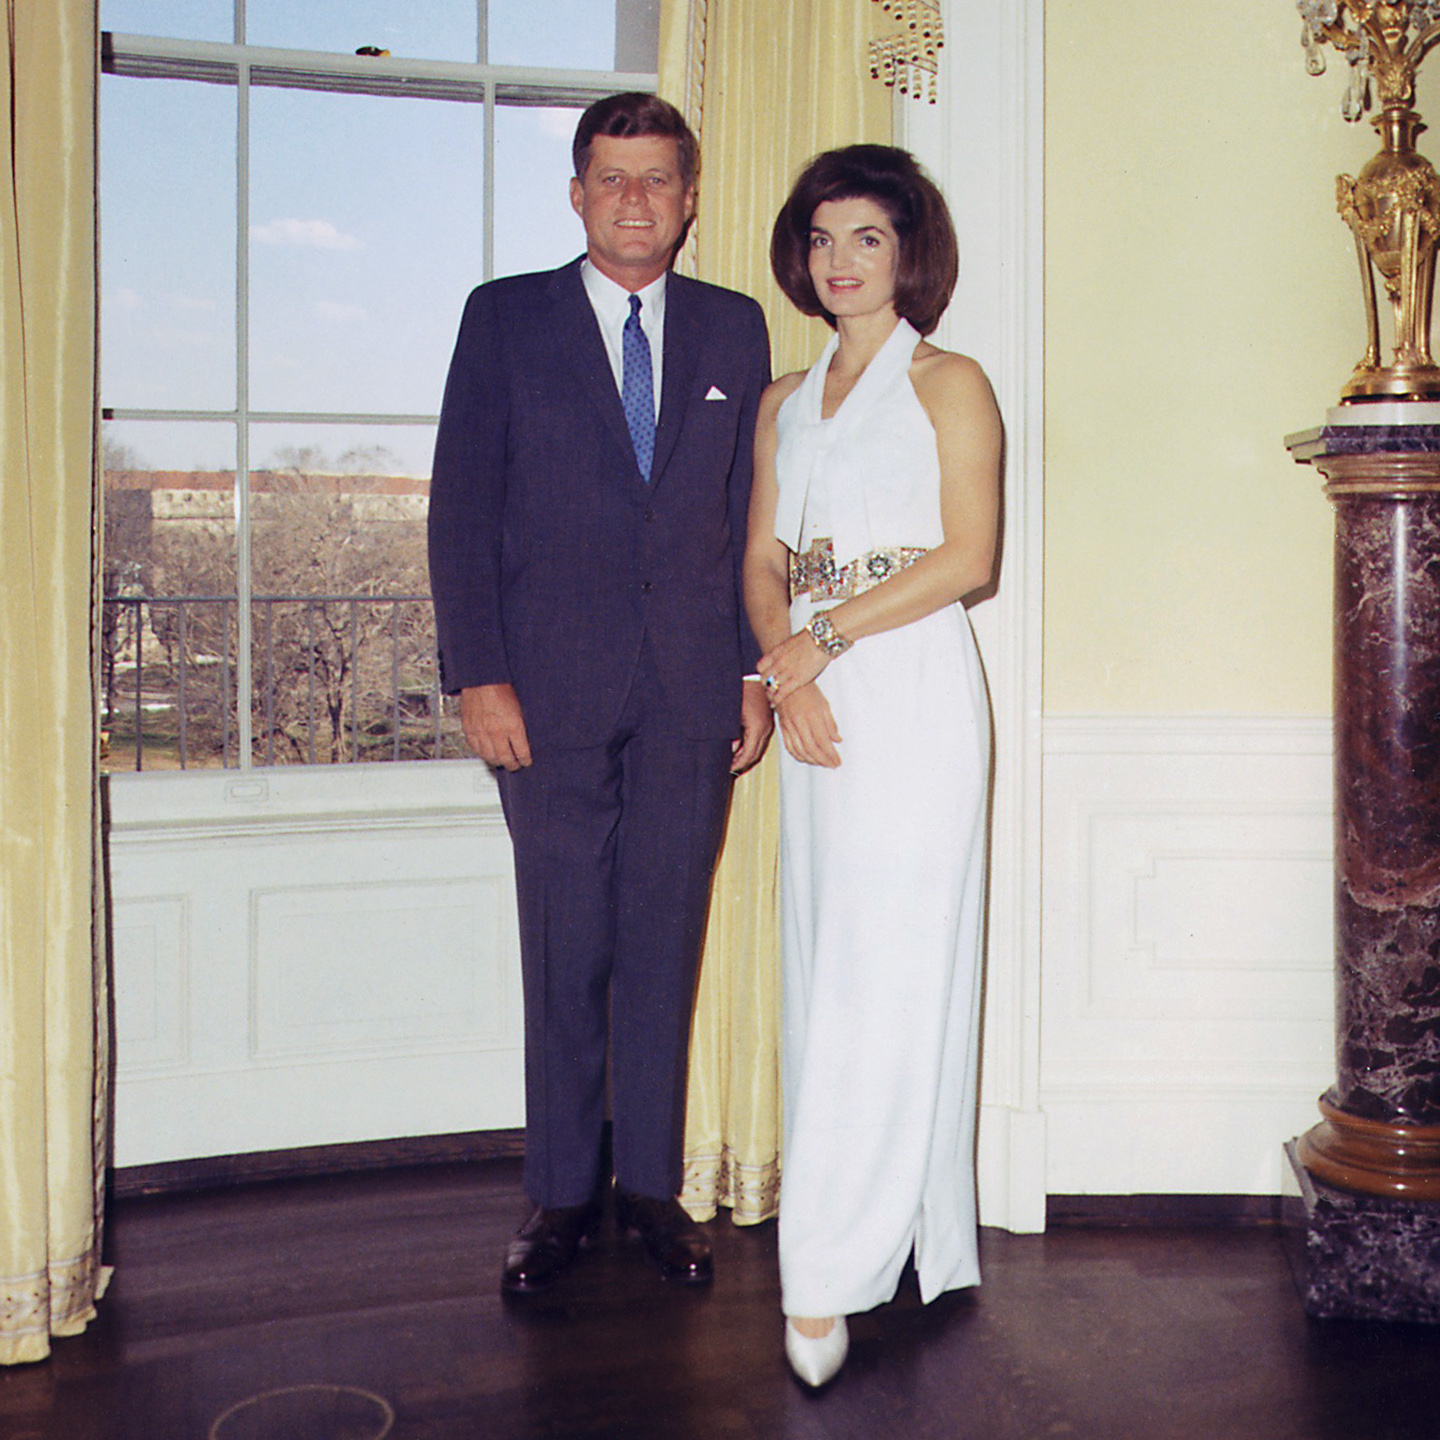 File:President And First Lady, Portrait Photograph. President Kennedy, Mrs. Kennedy. White House